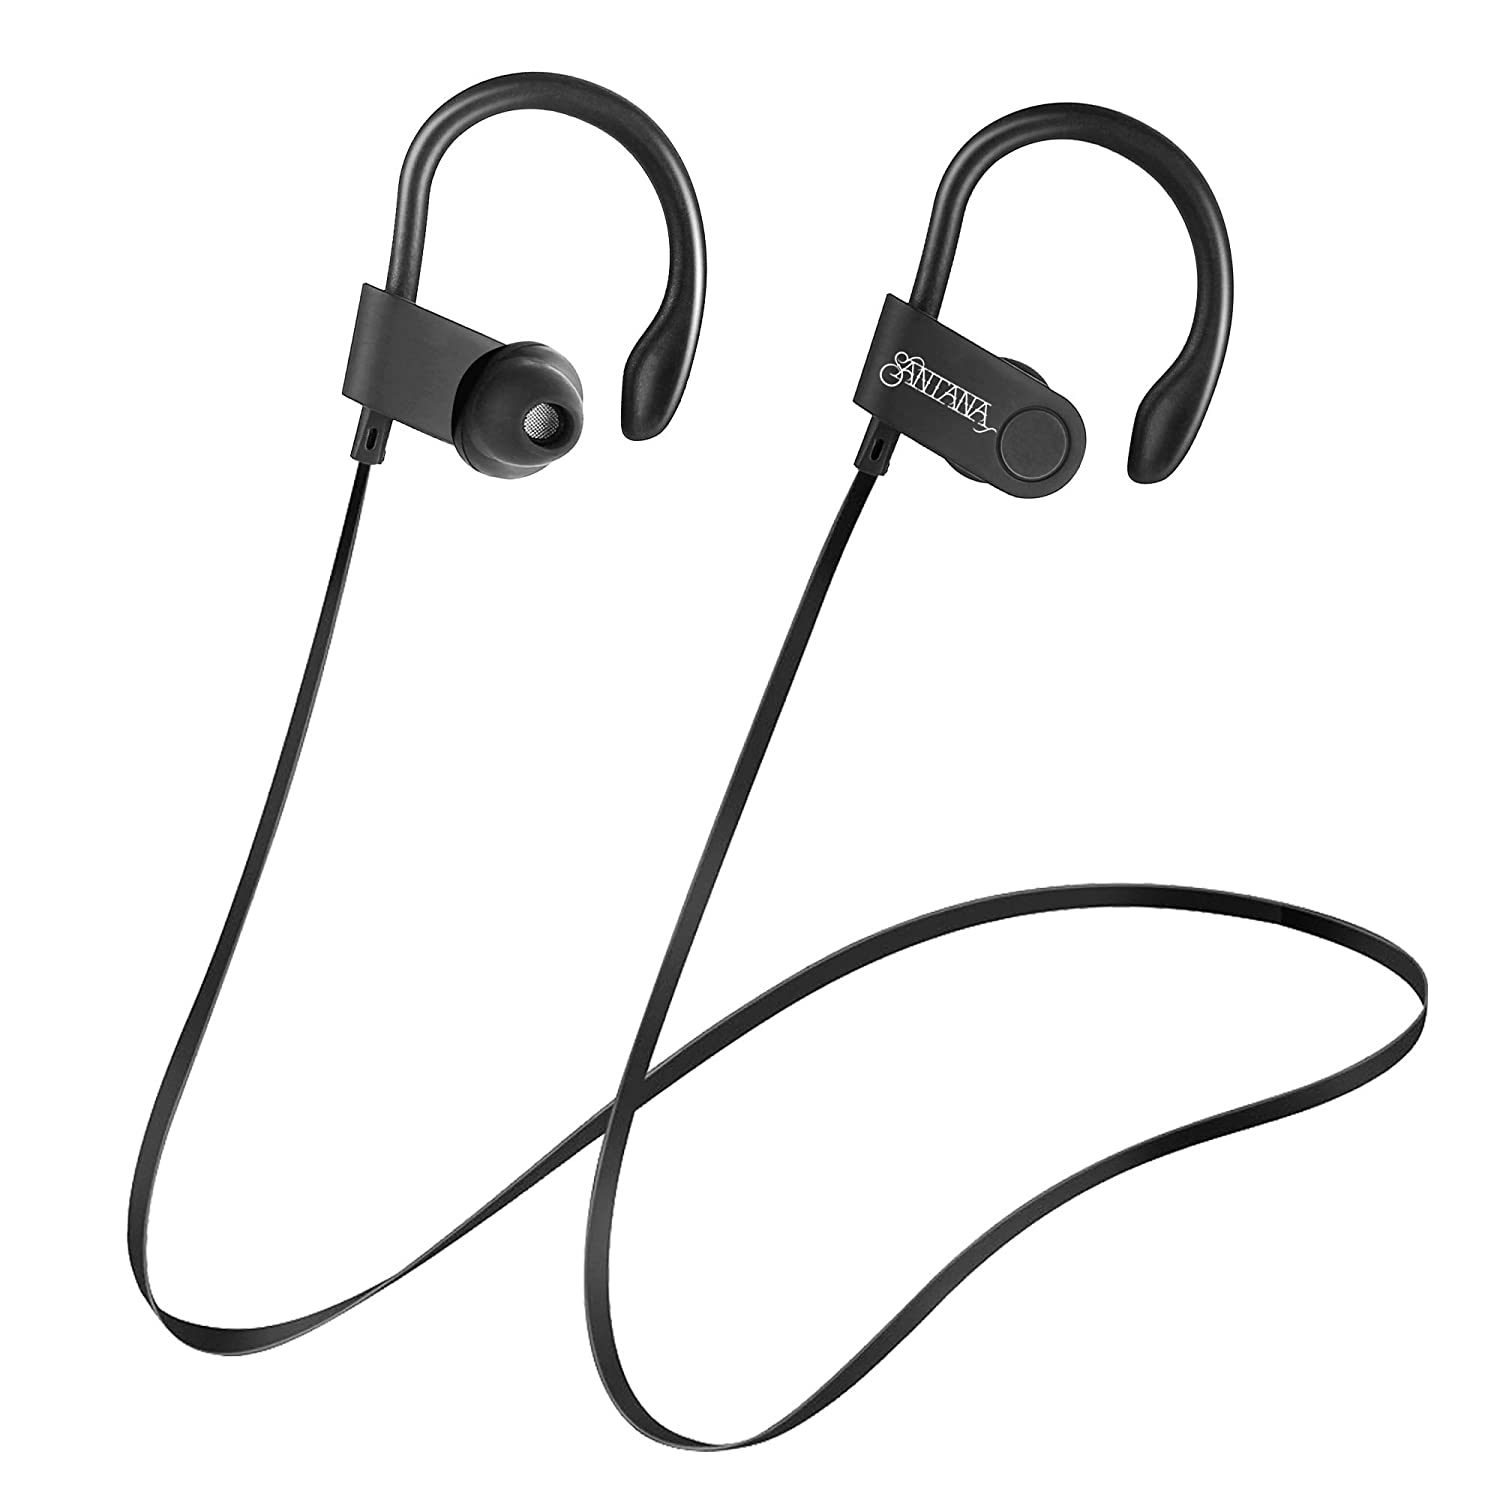 Rumba by Carlos Santana Wireless Sport Bluetooth Earbuds, Headphones IPX5 Waterproof, Hi-Fi HD Bass Stereo Sweatproof Earphones w Mic, Noise Cancelling Headset for Workouts, 6 HRS Playtime